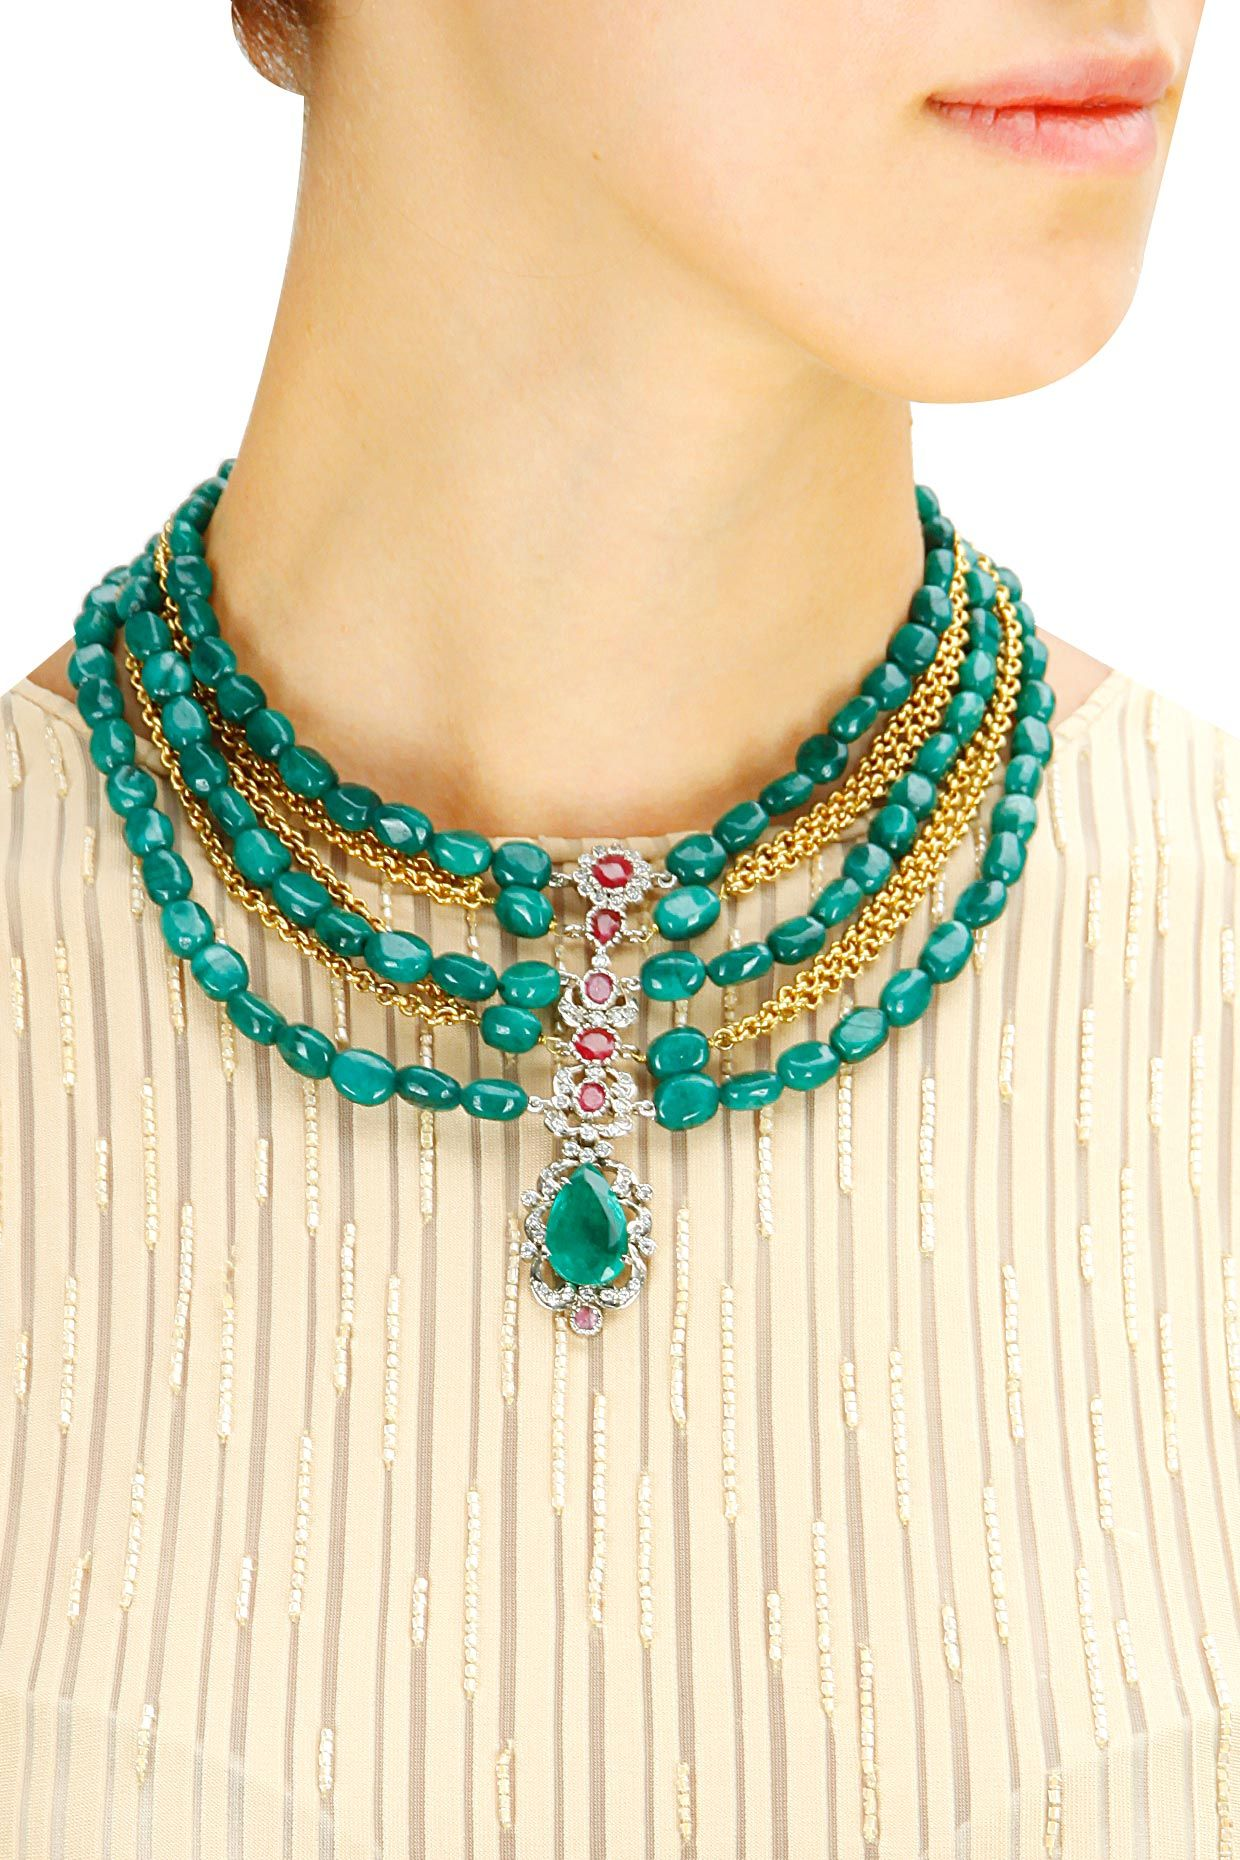 di gold silver corpus the onyx jewelry hair angelo draped original rosa necklace green plated spirito collections